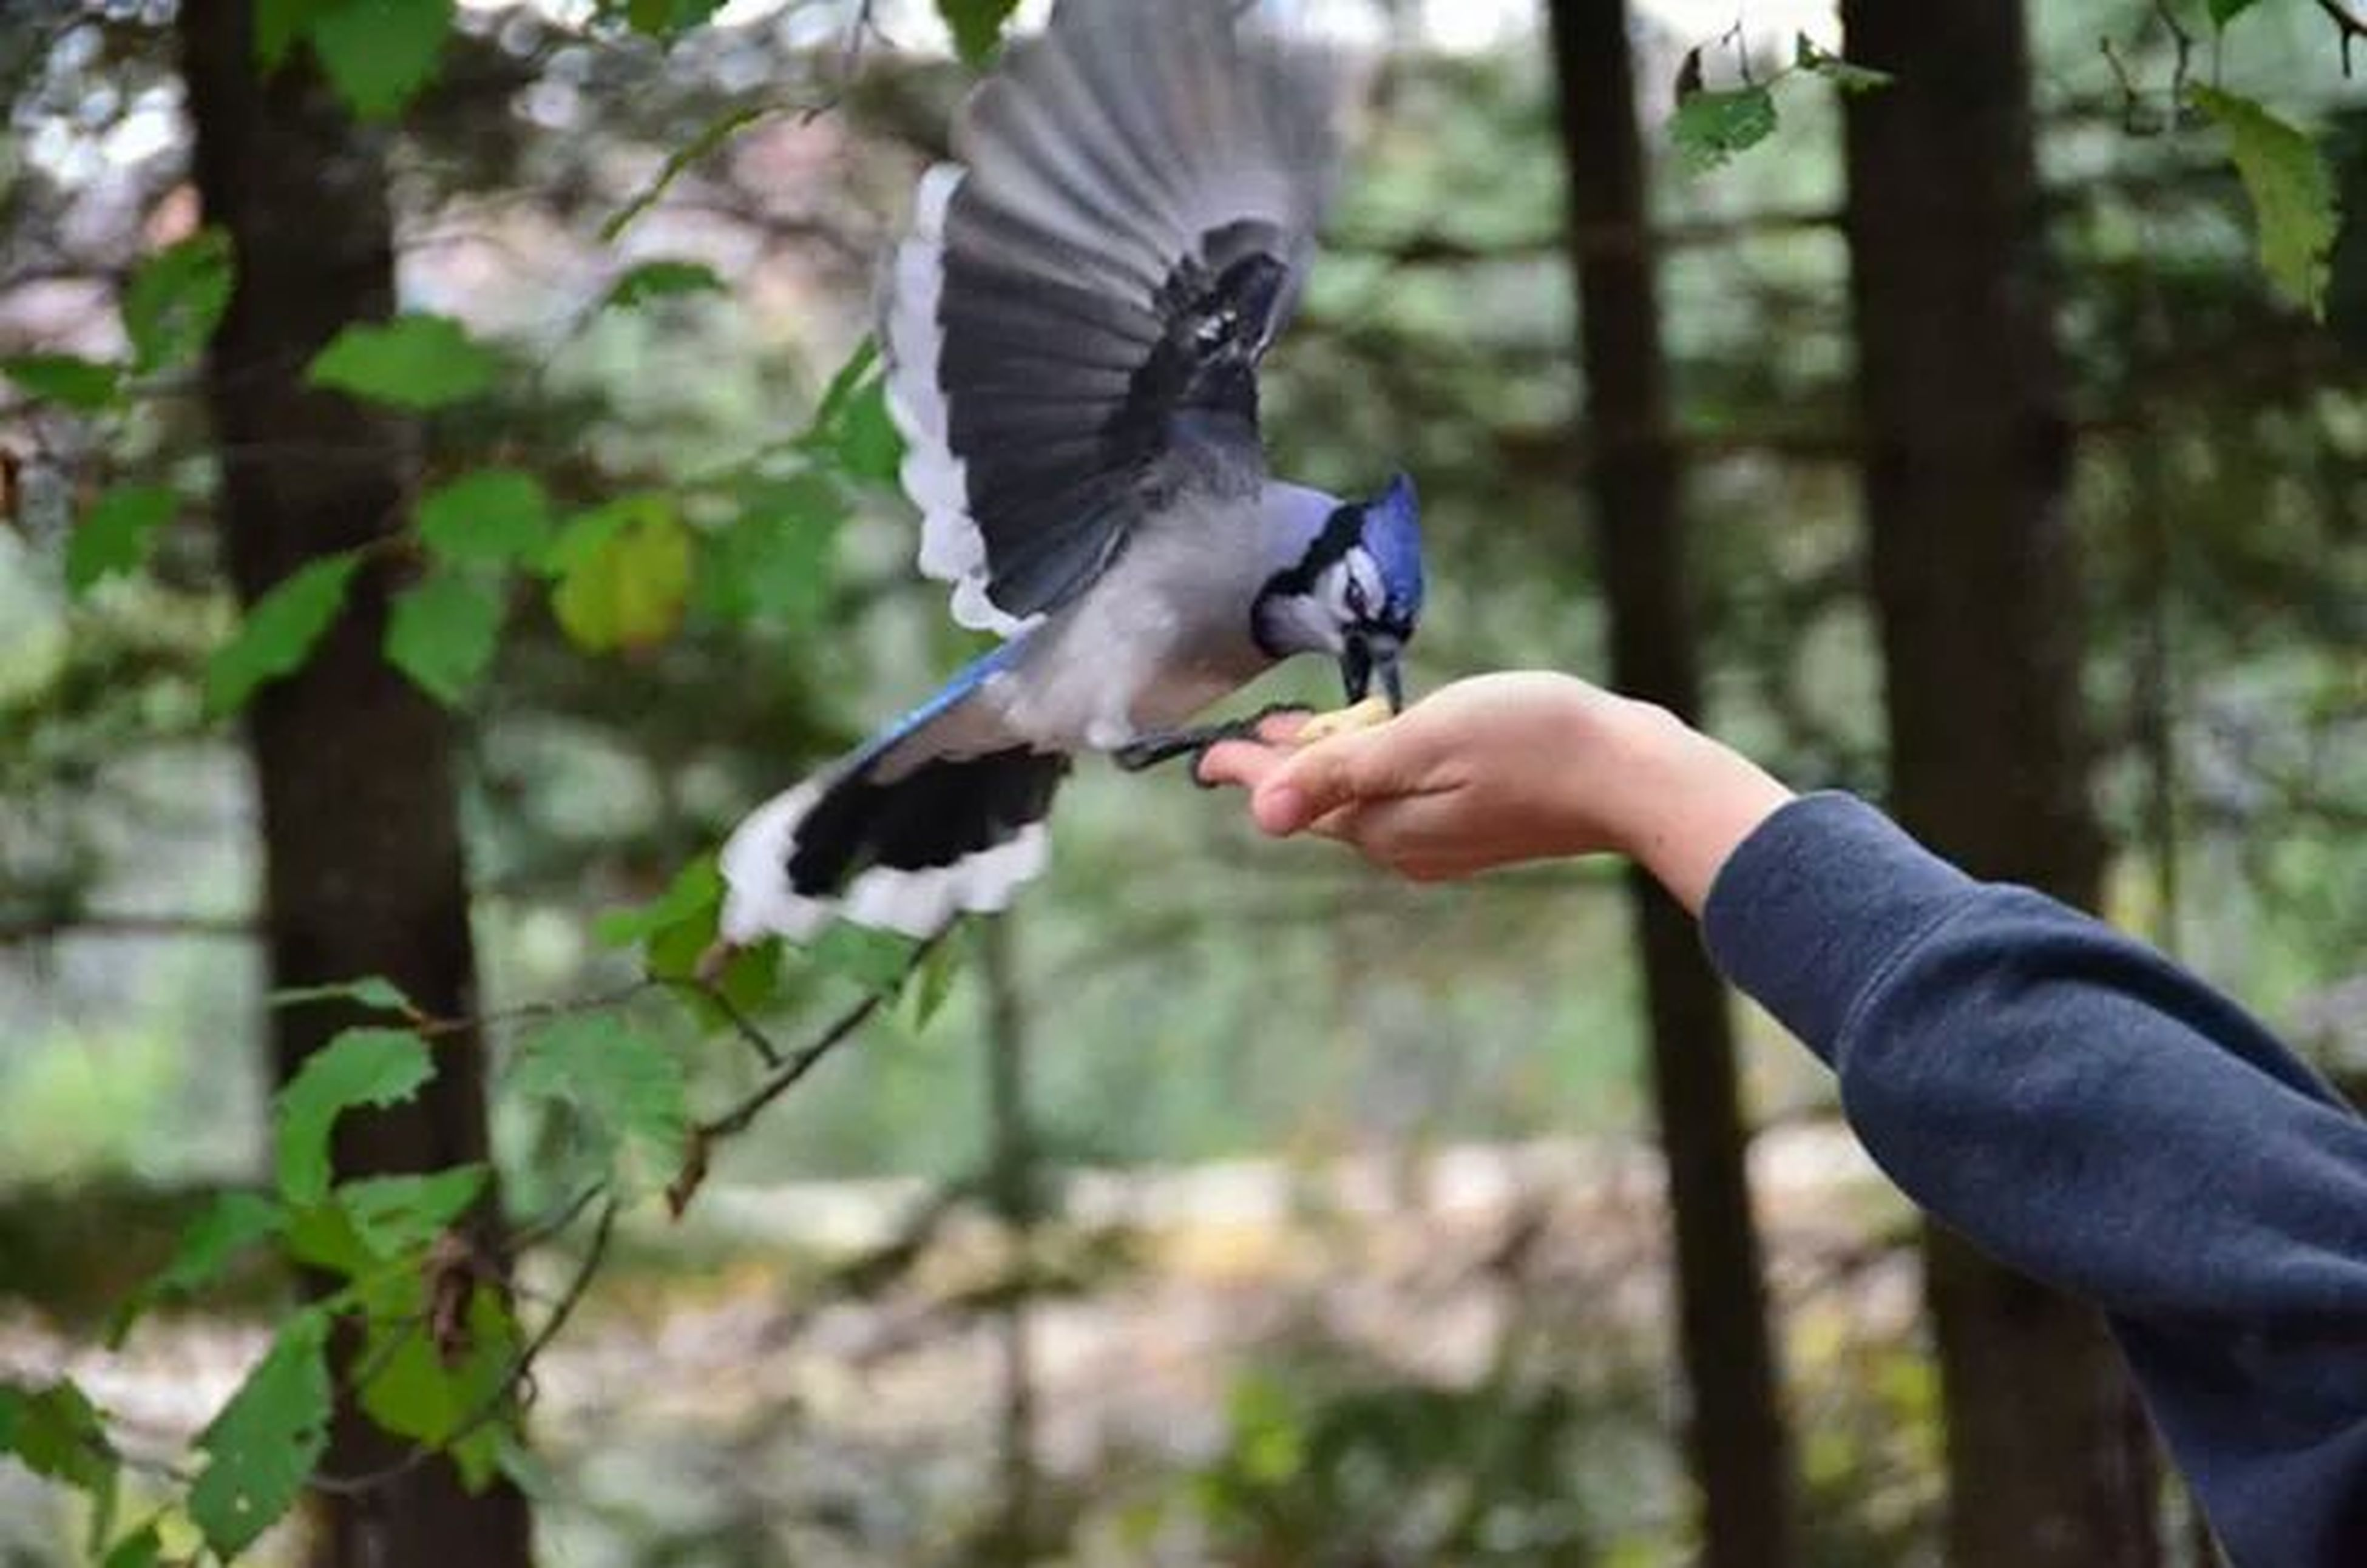 animal themes, bird, one animal, animals in the wild, wildlife, focus on foreground, perching, tree, full length, spread wings, holding, person, day, side view, outdoors, nature, flying, two animals